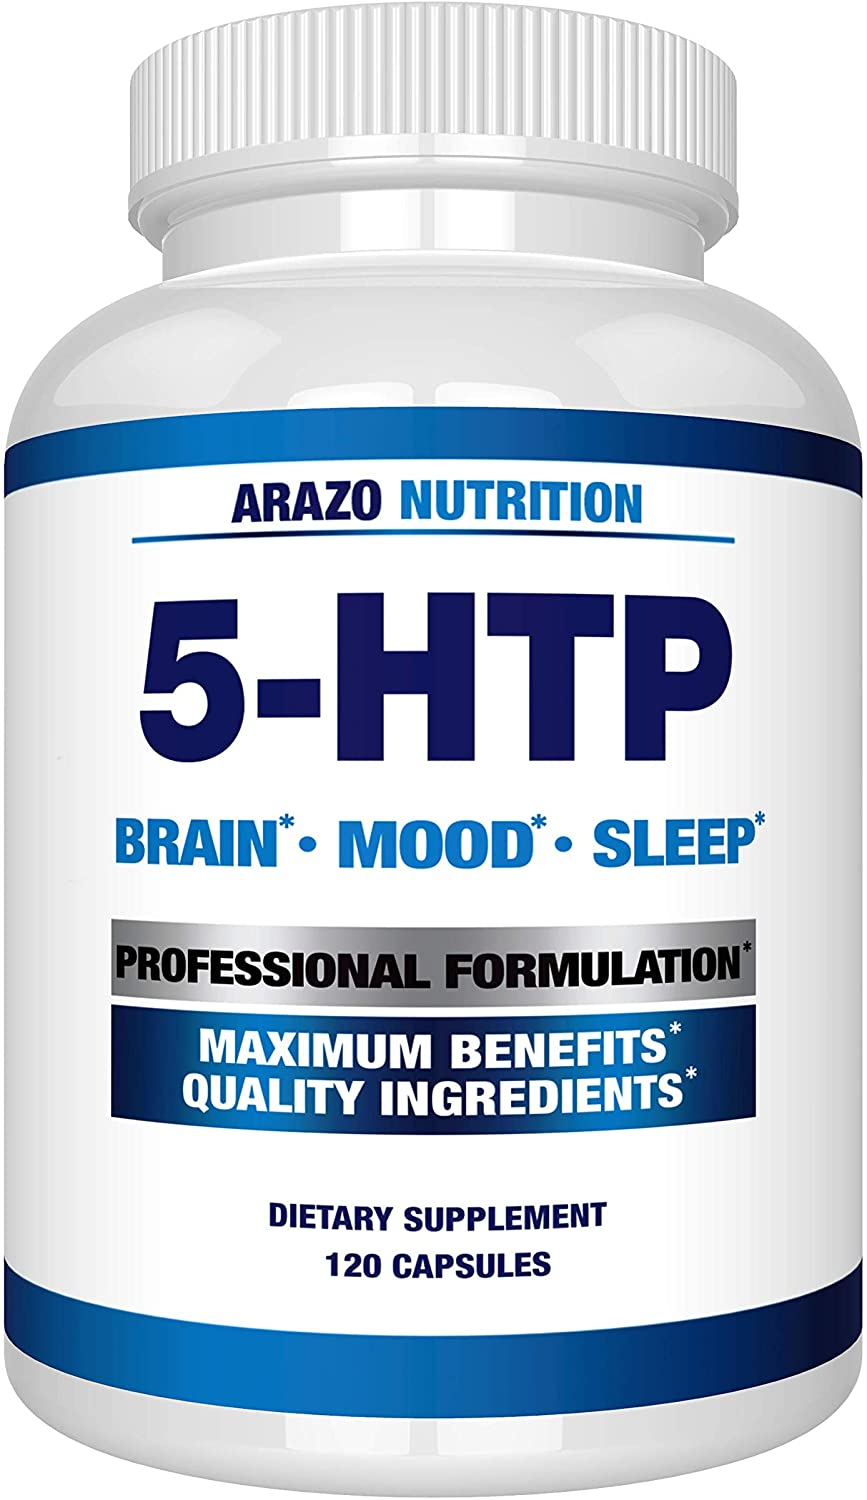 Too much 5 htp